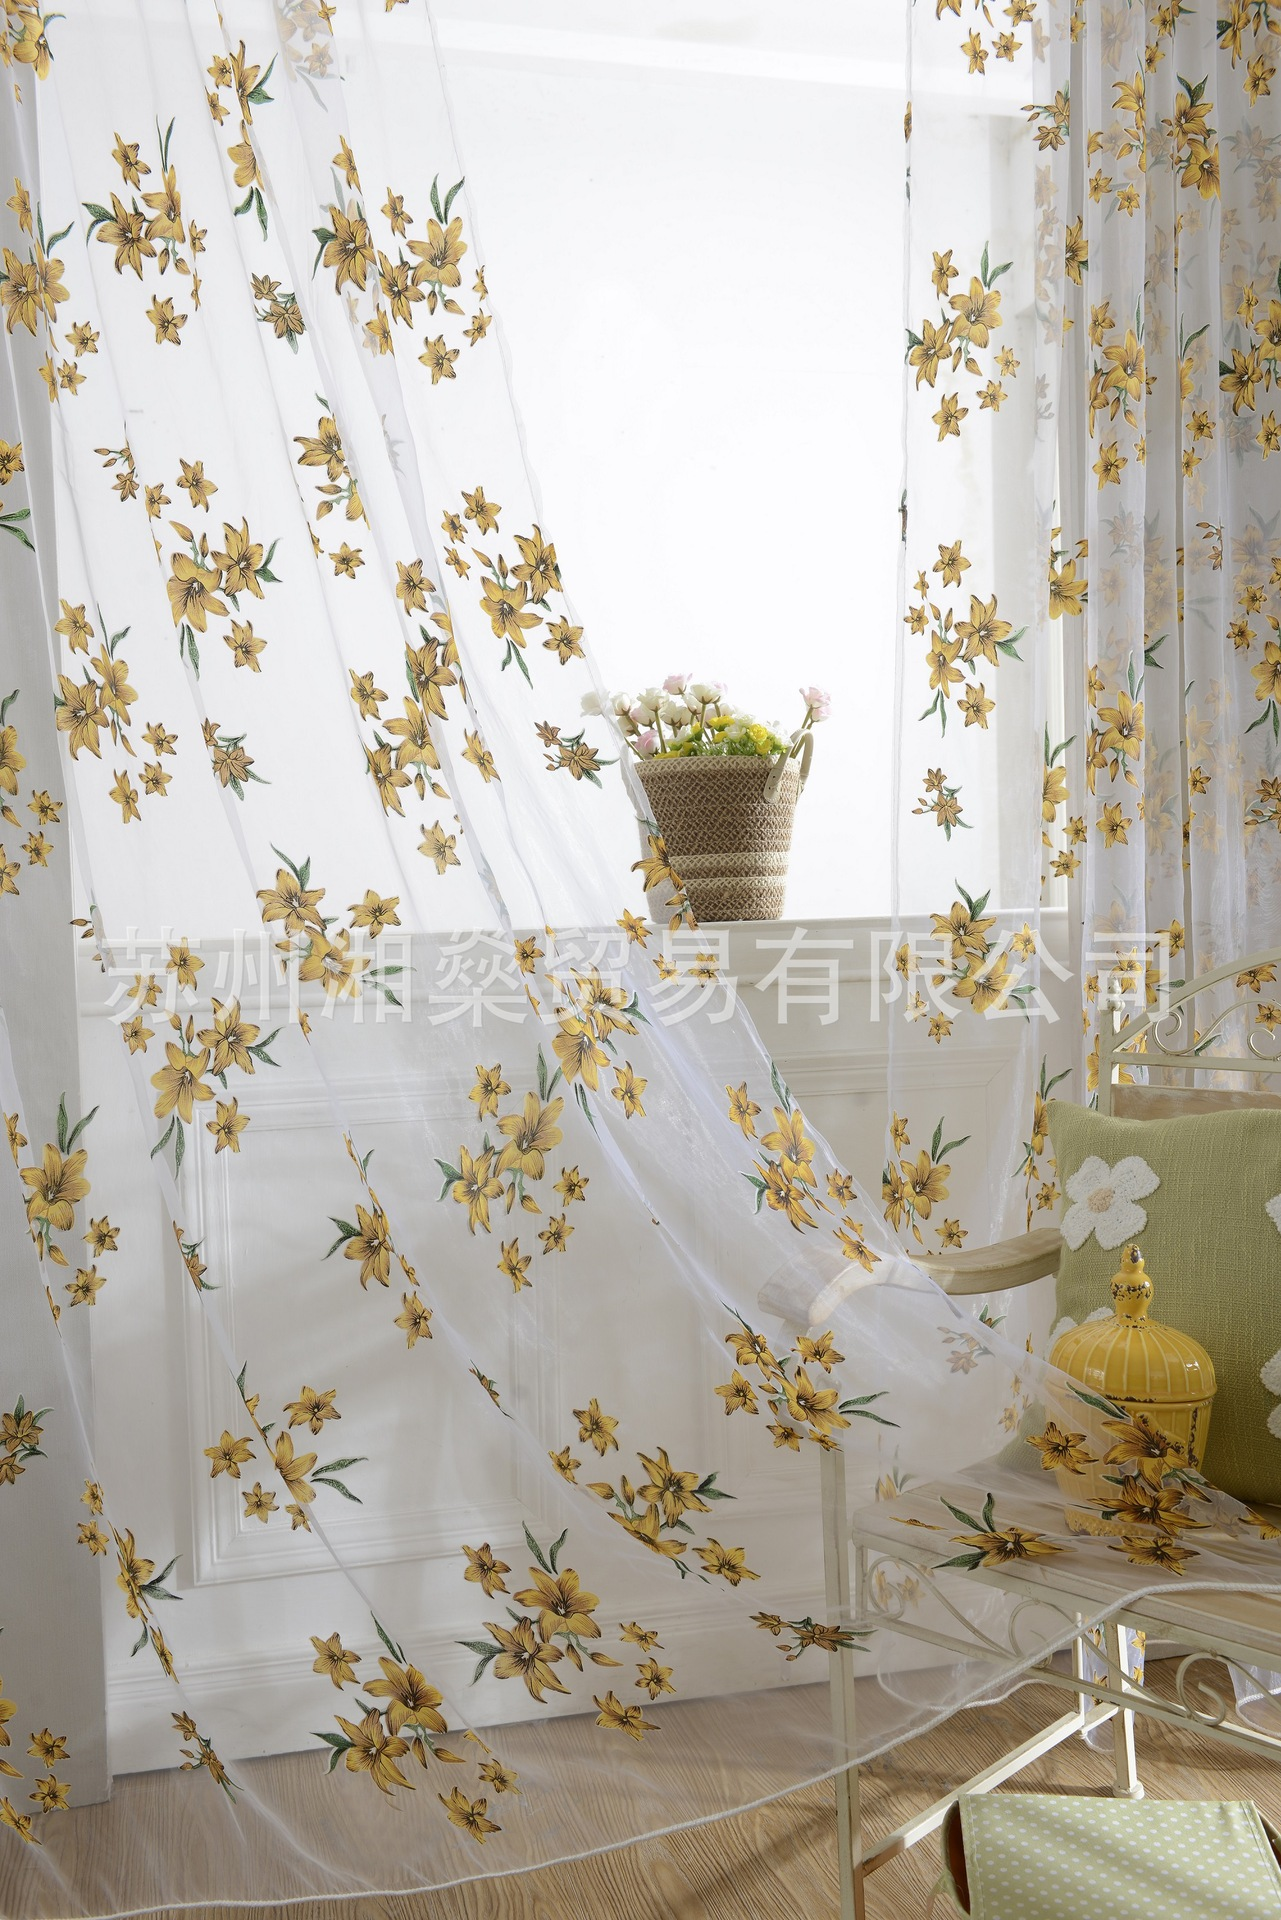 Curtain For Balcony: Floral Design Tulle Curtain Fabrics Beautiful Sheer Panel